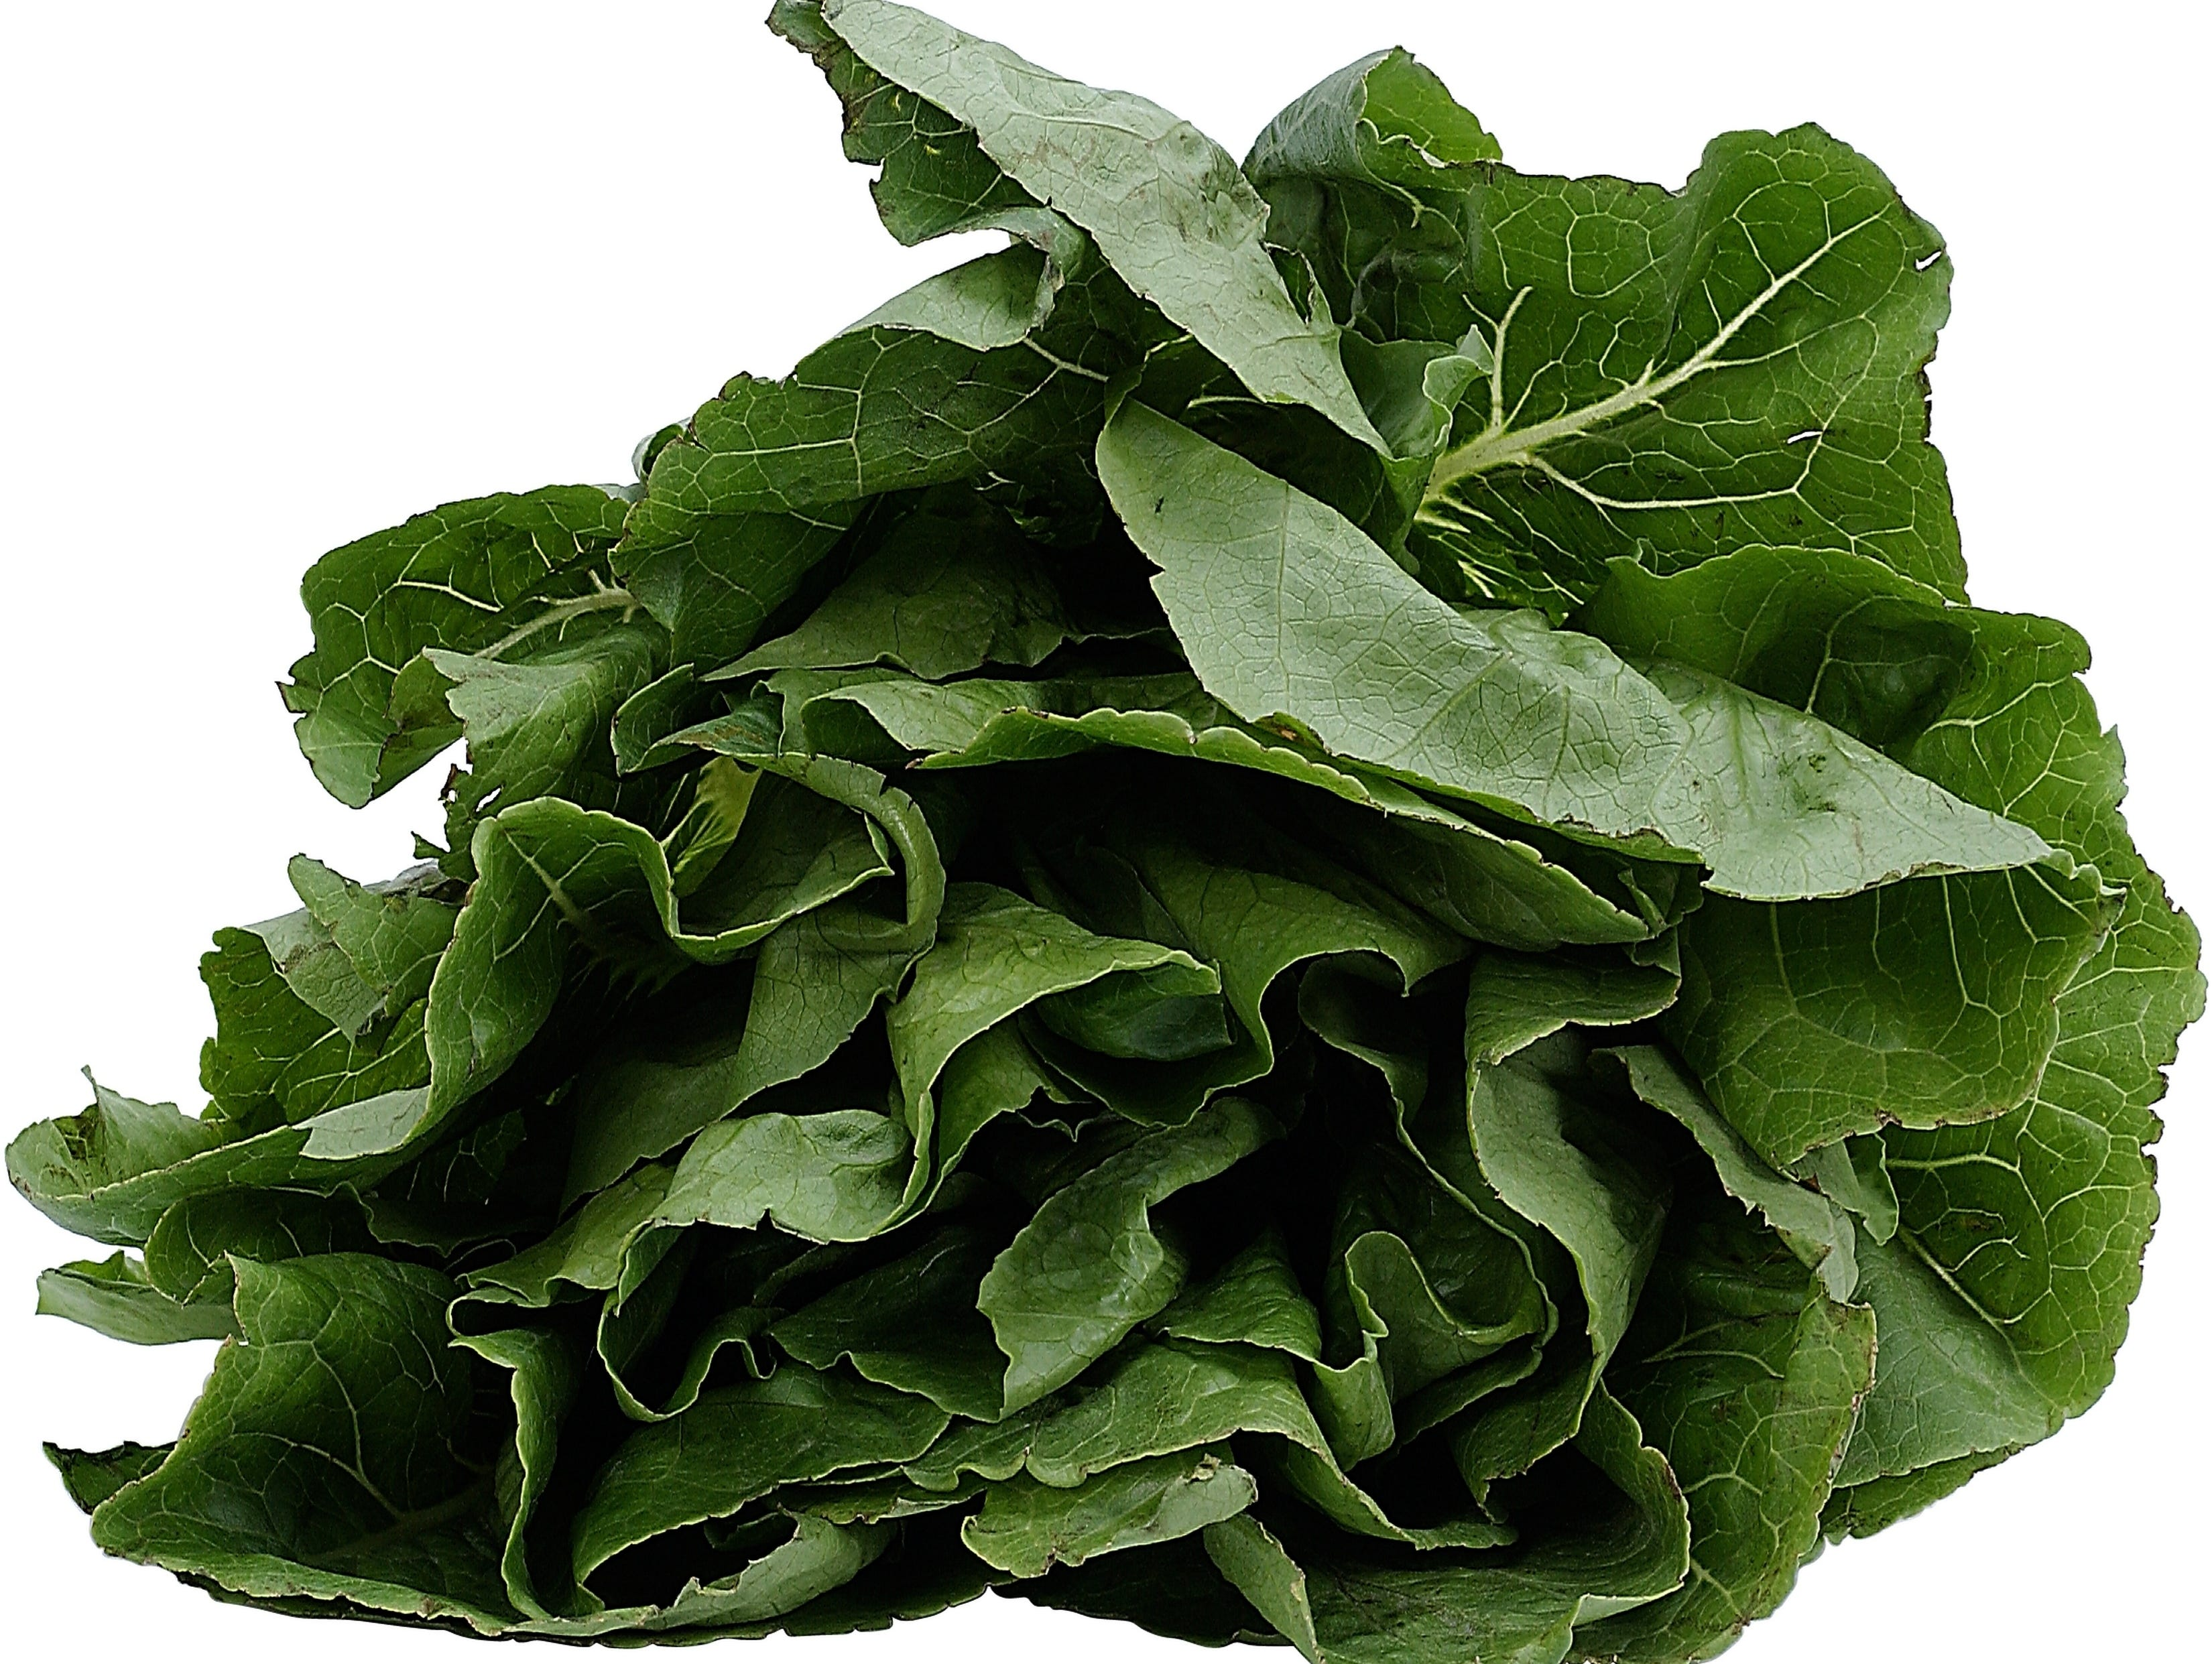 How much kale should i eat per day